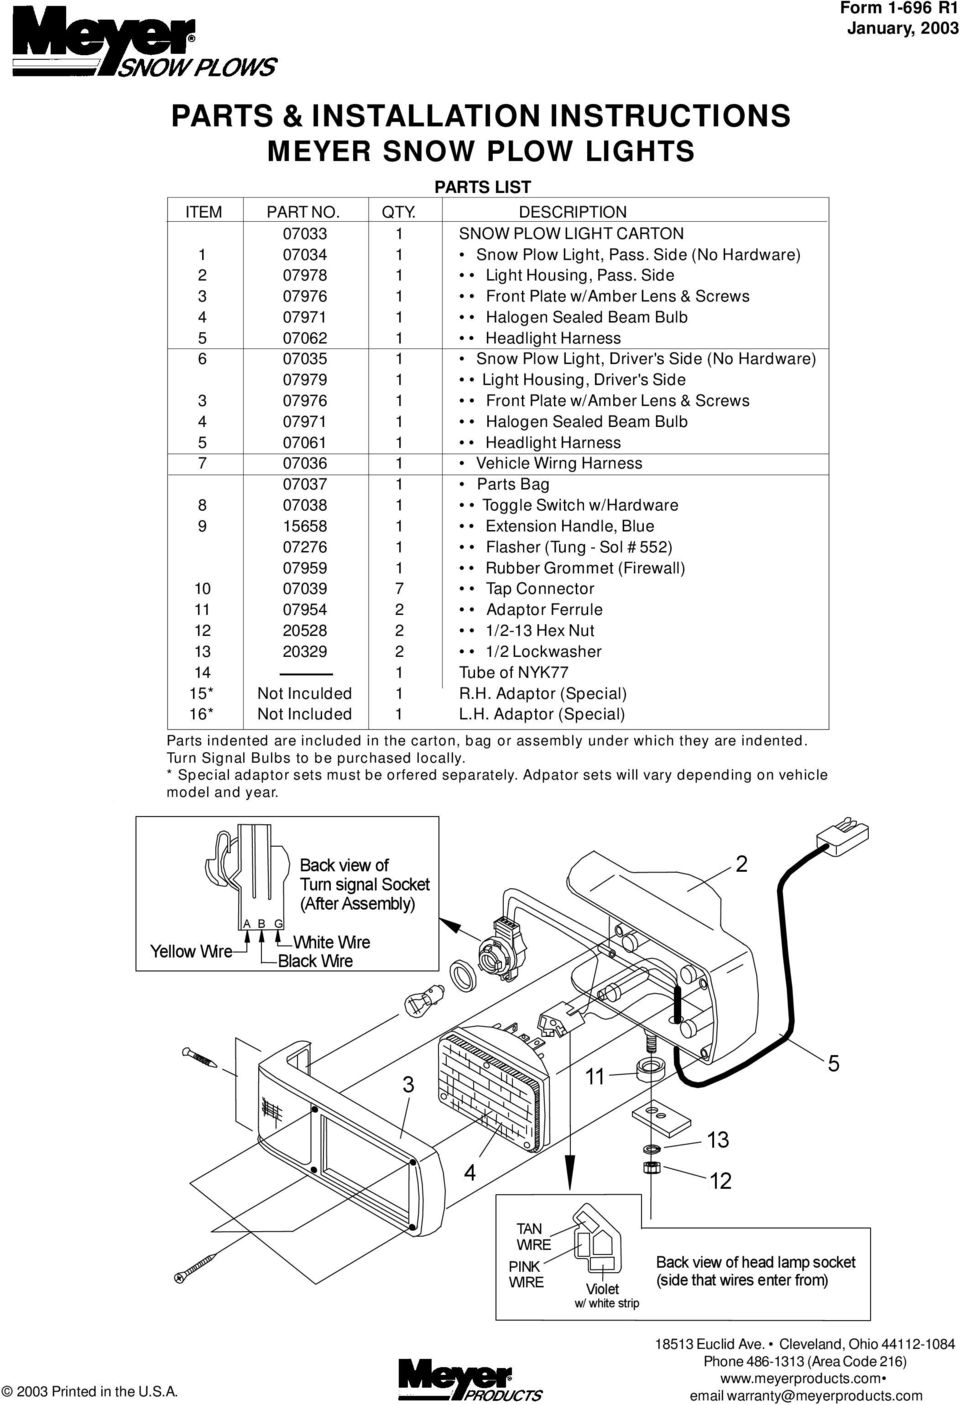 Meyer Salt Spreader Wiring Diagram Remote Control Hydraulic Wire For Parts Installation Instructions Snow Plow Lights Pdf On